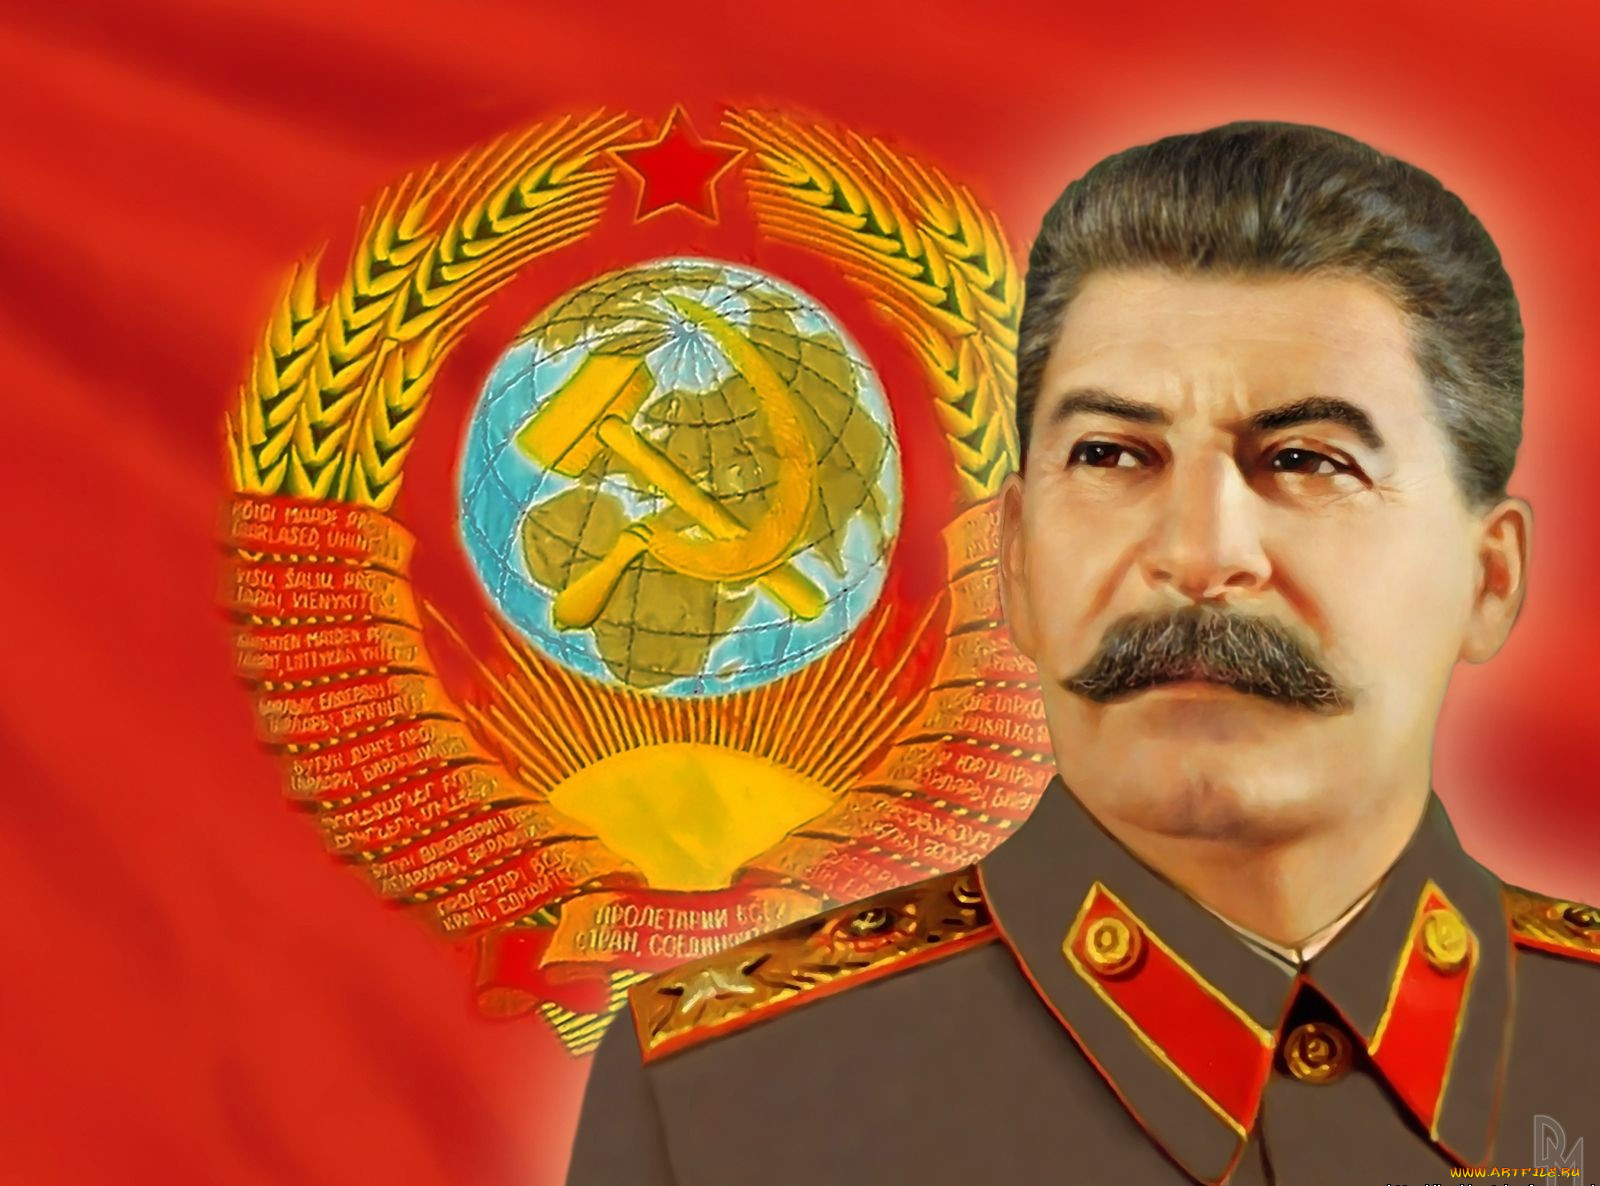 an analysis of stalins cold blooded rule since 1927 in soviet russia